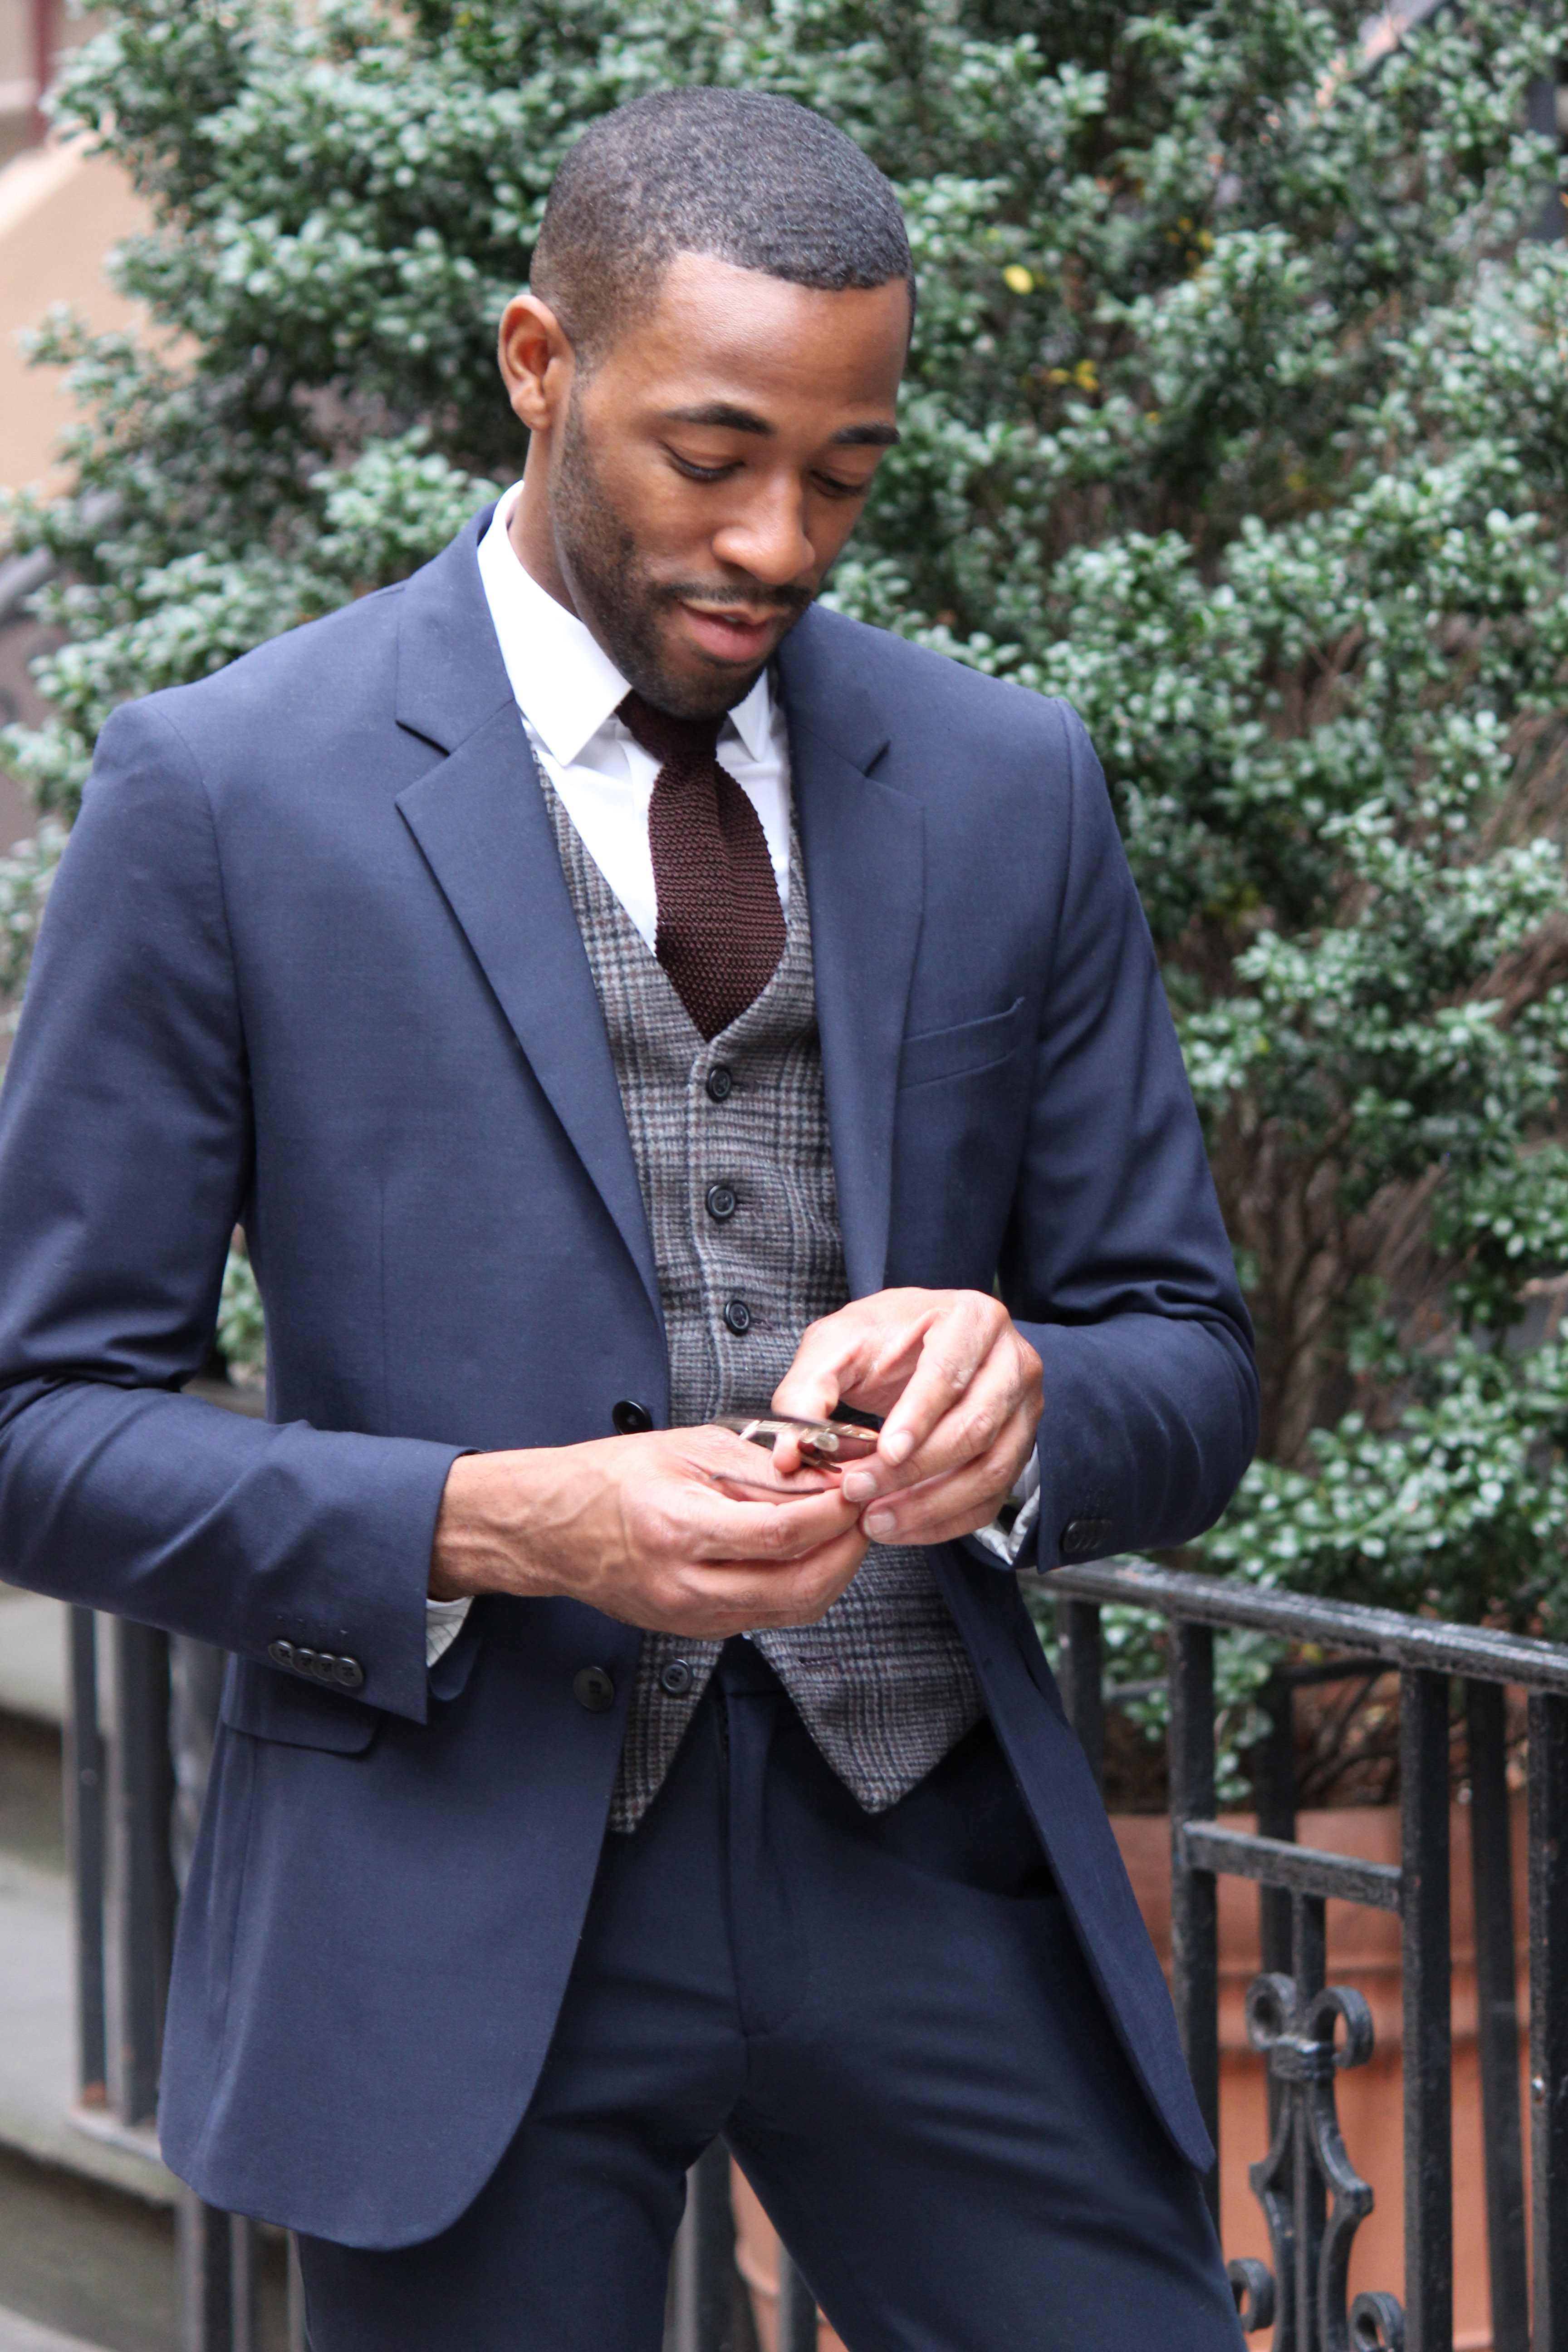 Ryan Clark, founder of High Fashion Men